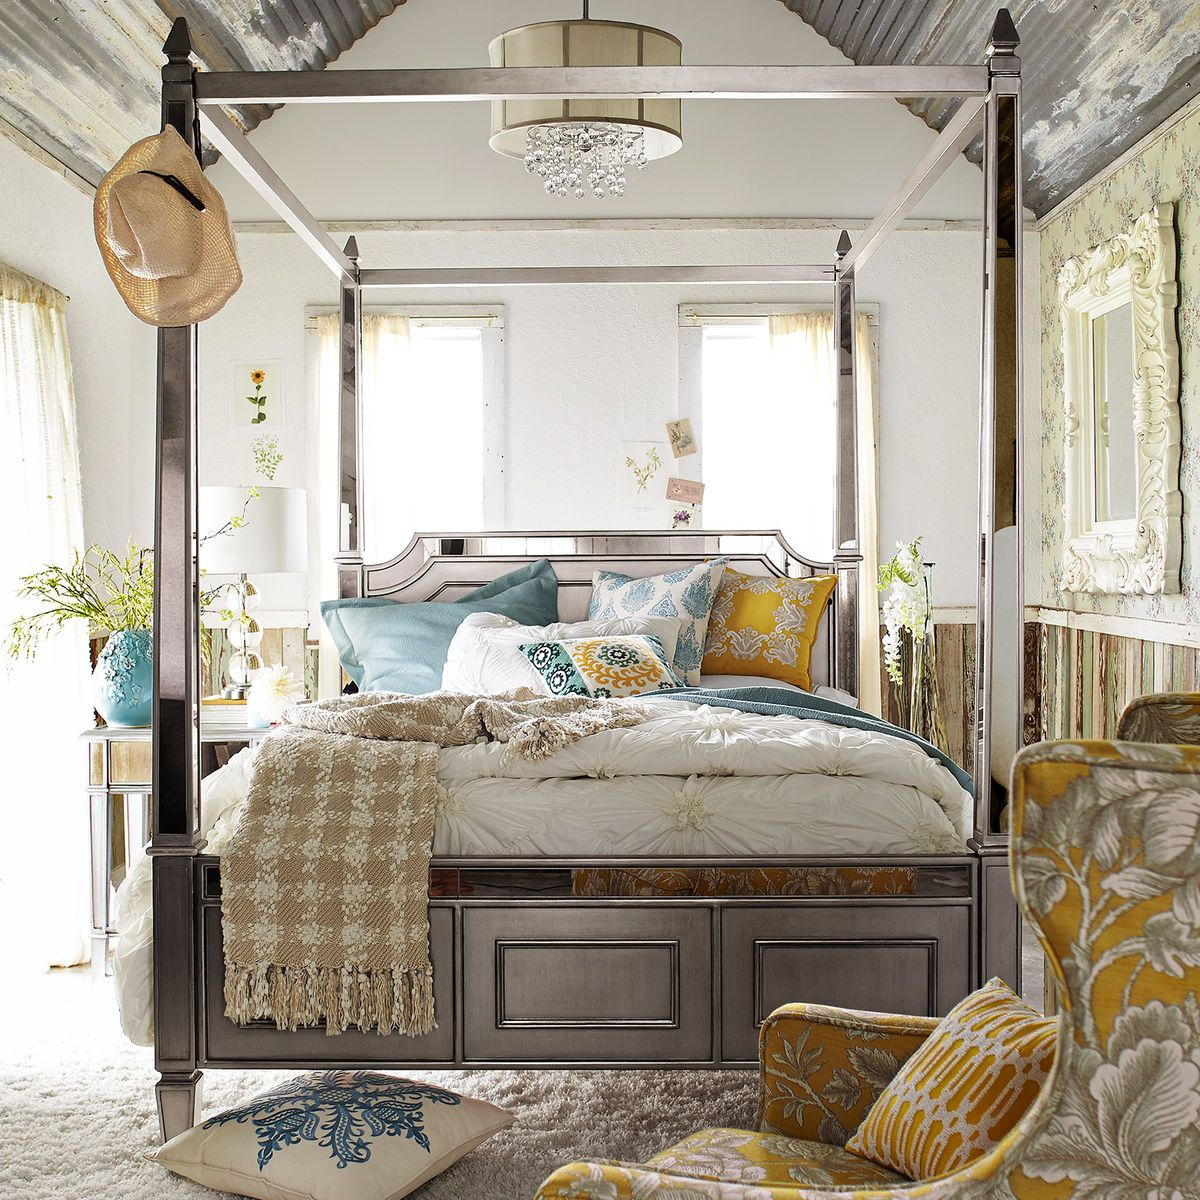 Hayworth Silver Canopy Bed Home decor, Furniture, Home